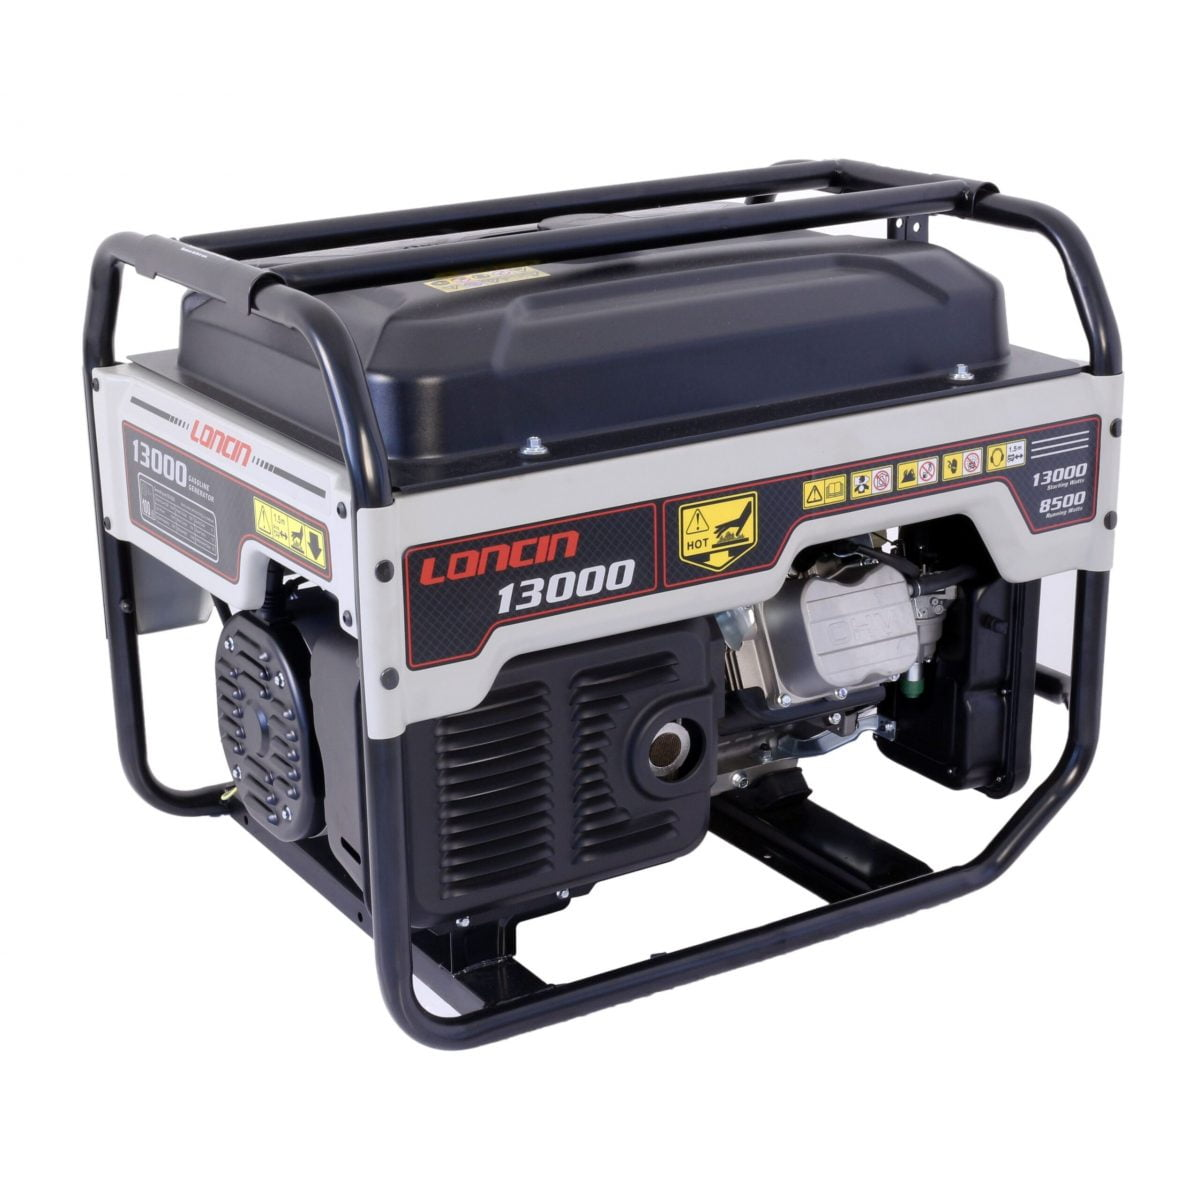 generator loncin 13000 o mac 2.ro scaled